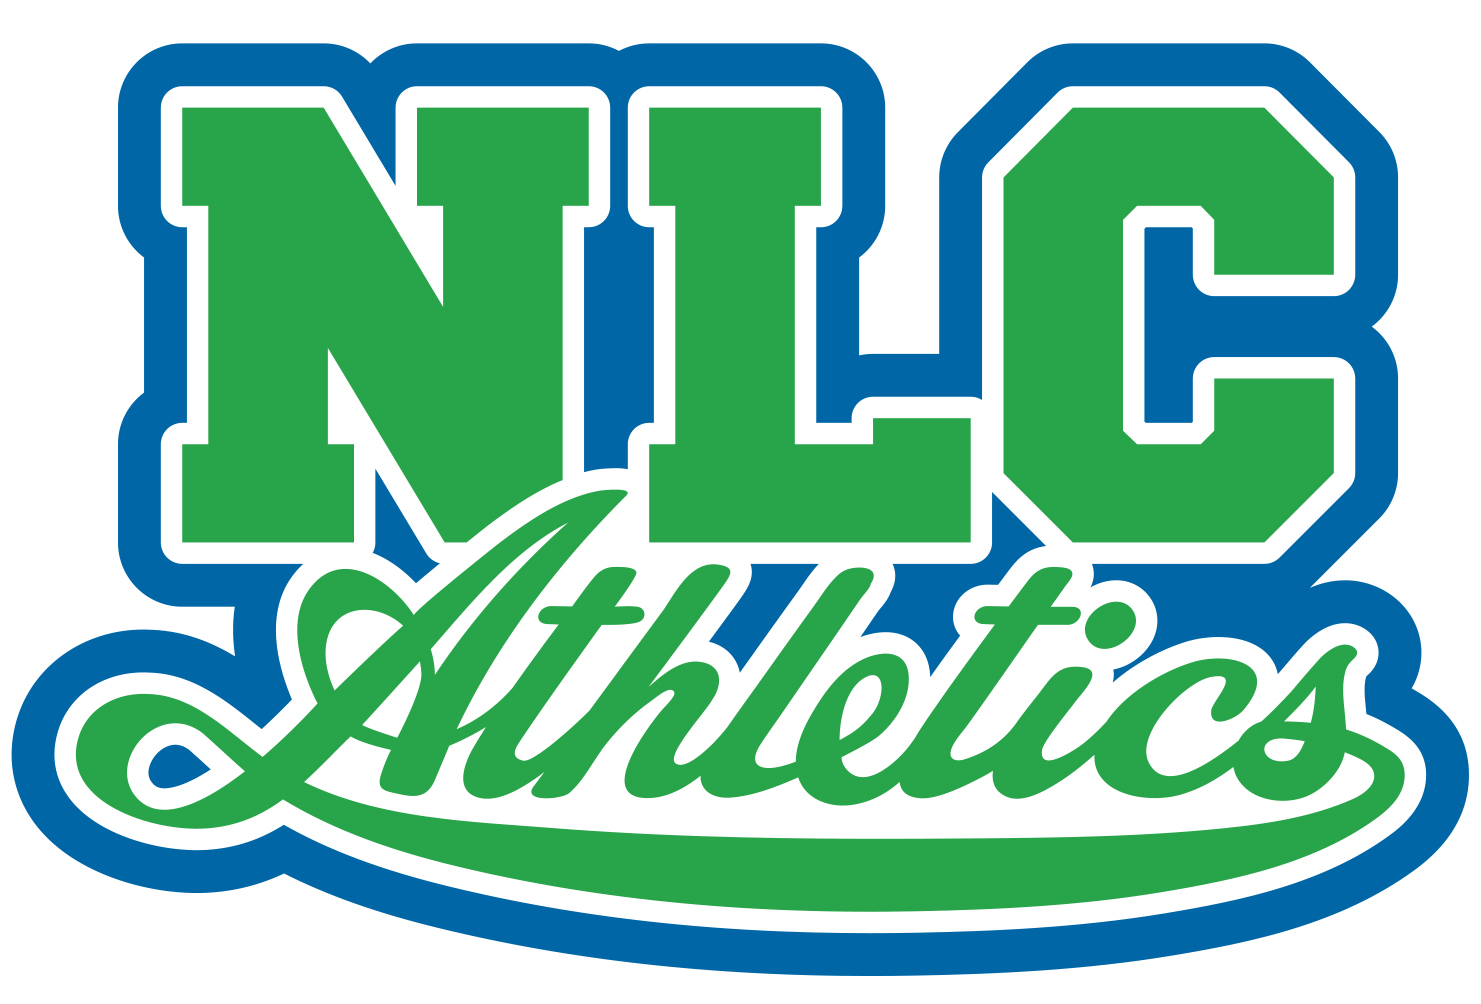 NLC athletics logo